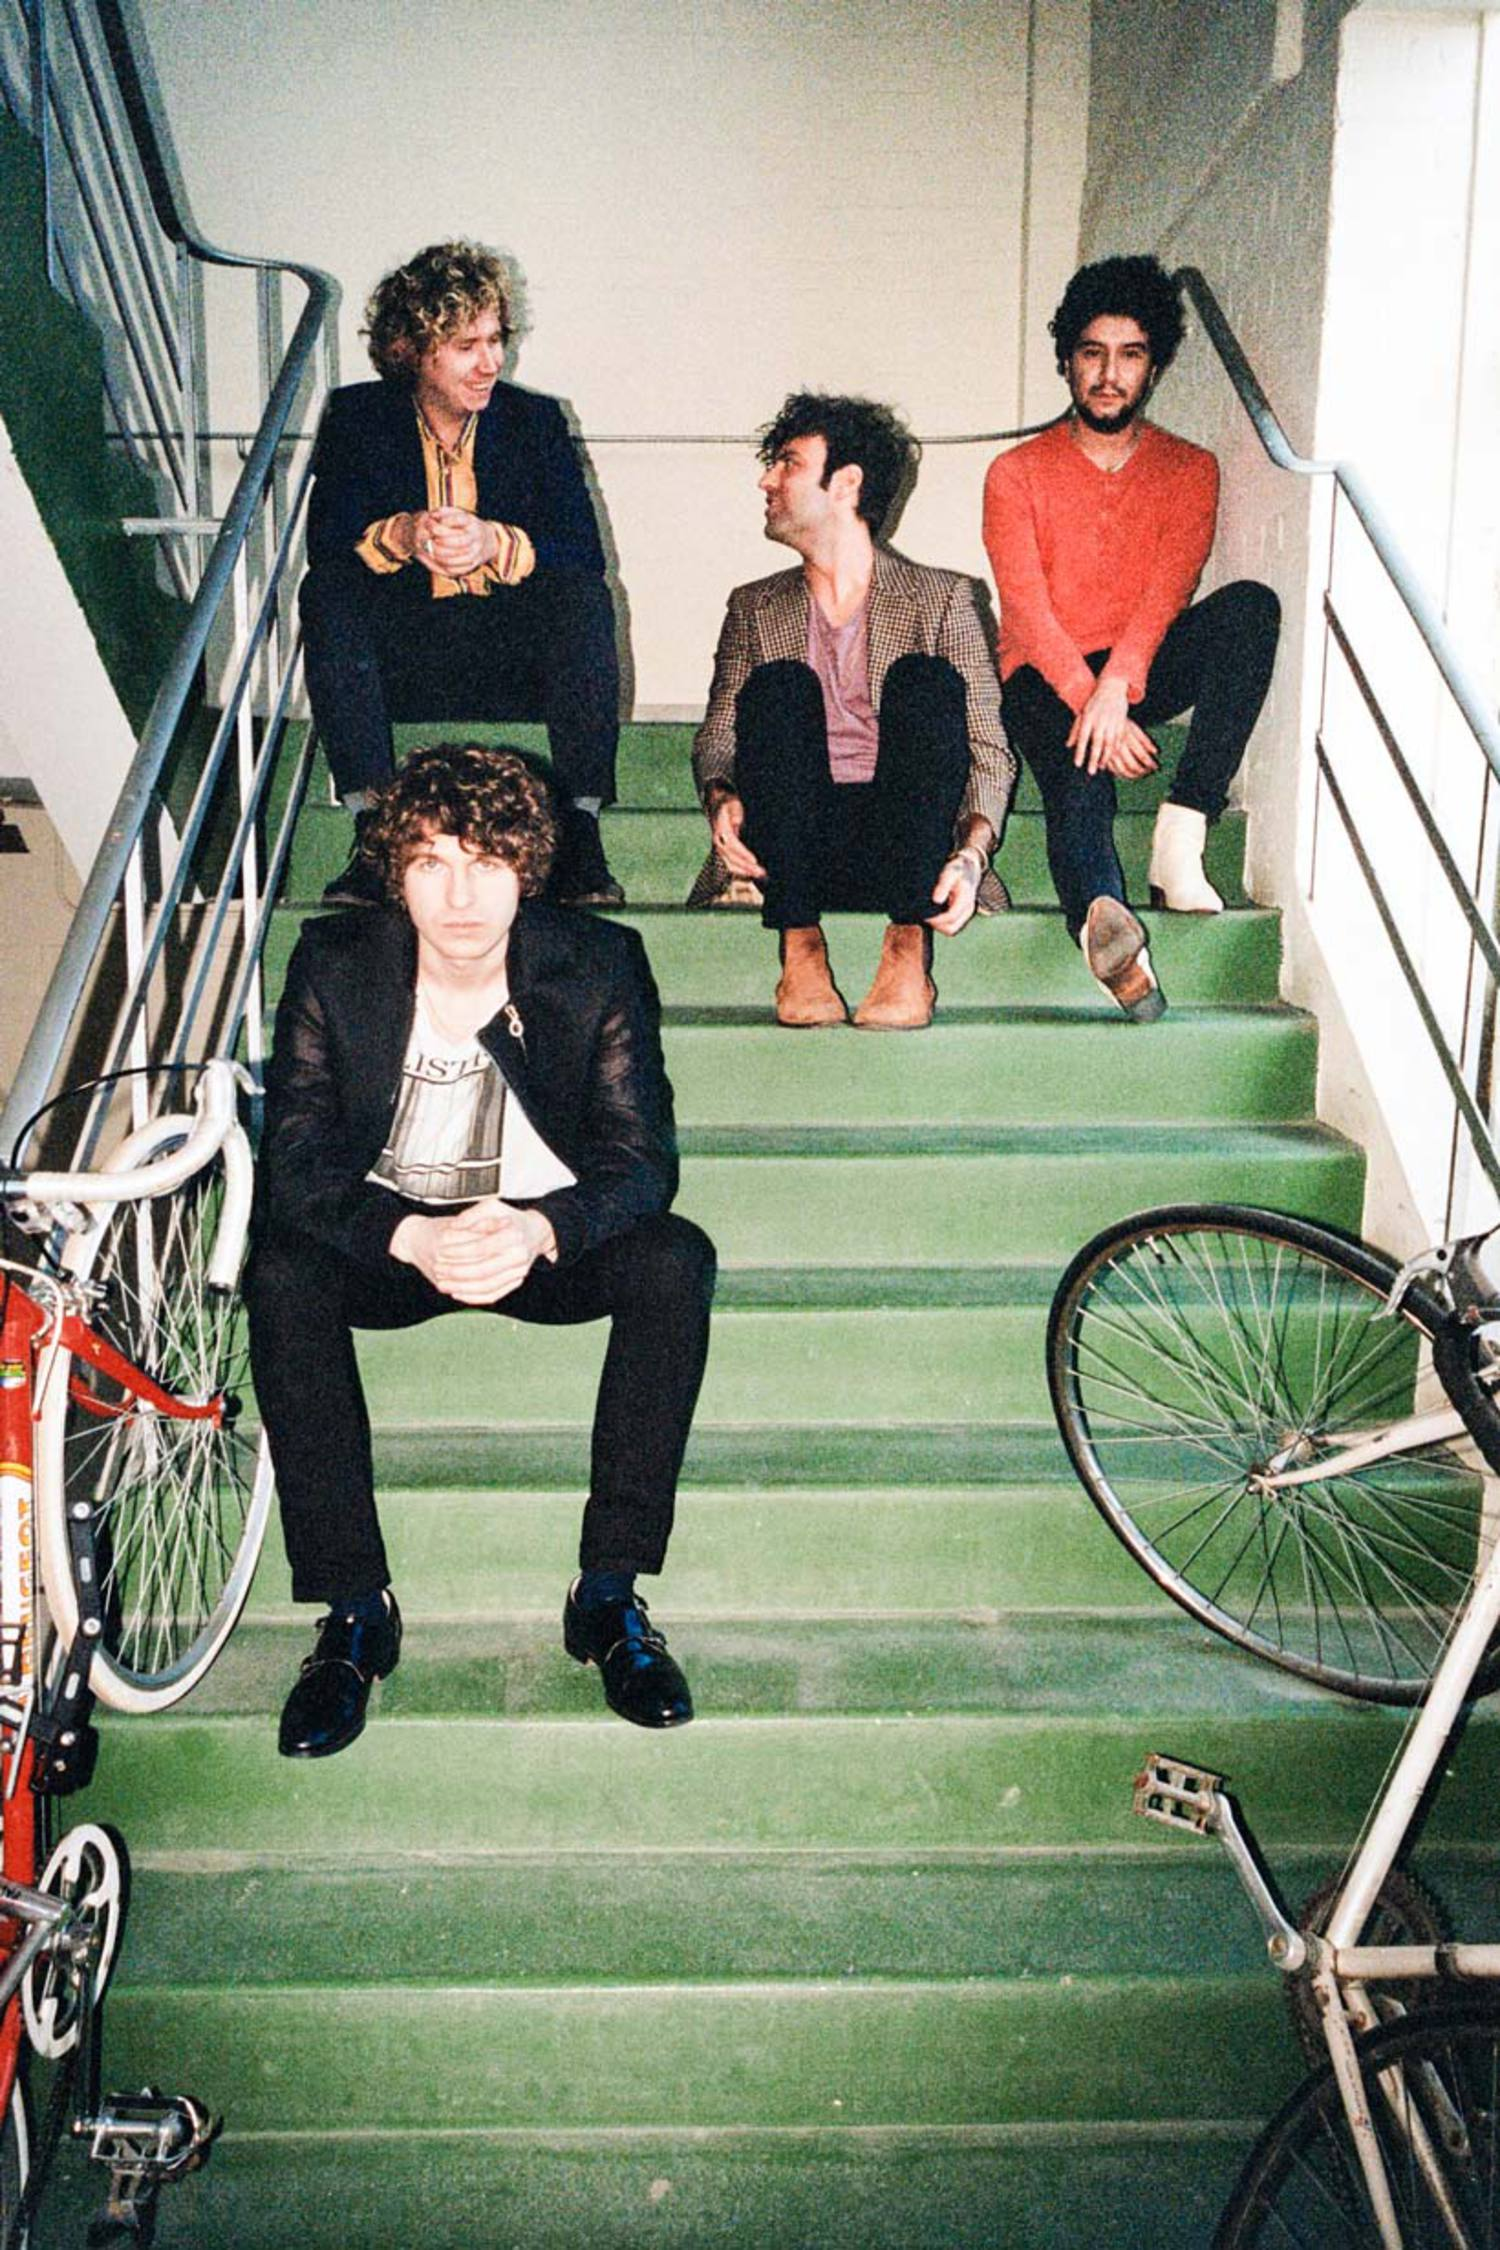 Press shot of The Kooks: (Top left to right) Hugh Harris, Pete Denton, Alexis Nunez, and Luke Pritchard (Bottom left)